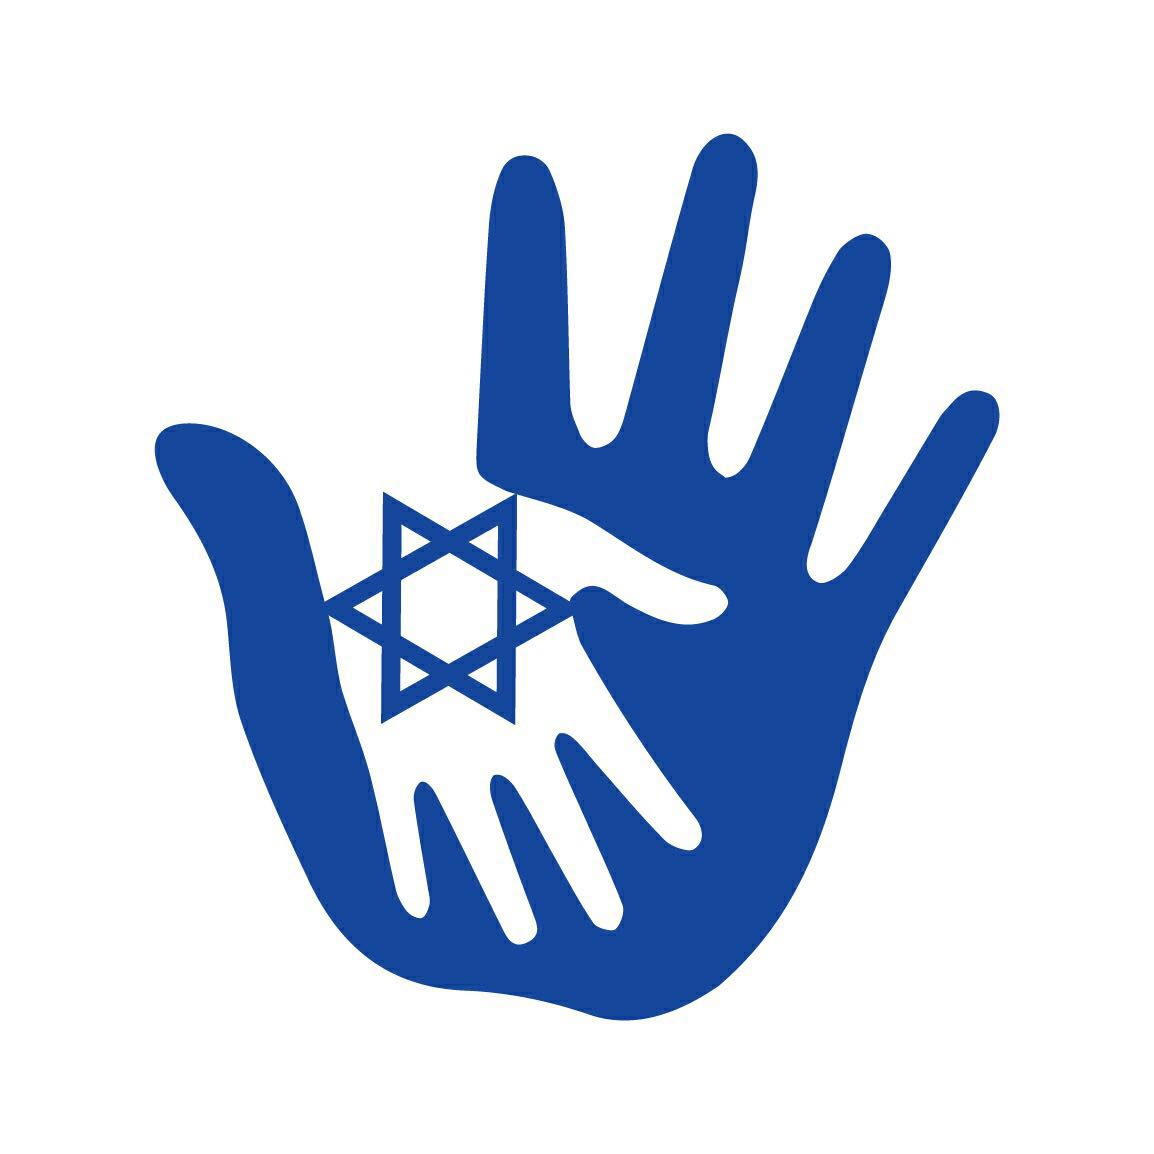 Members of the Joining Hands Mission sported this emblem on their shirts. Photo courtesy of Israeli Embassy in Vietnam